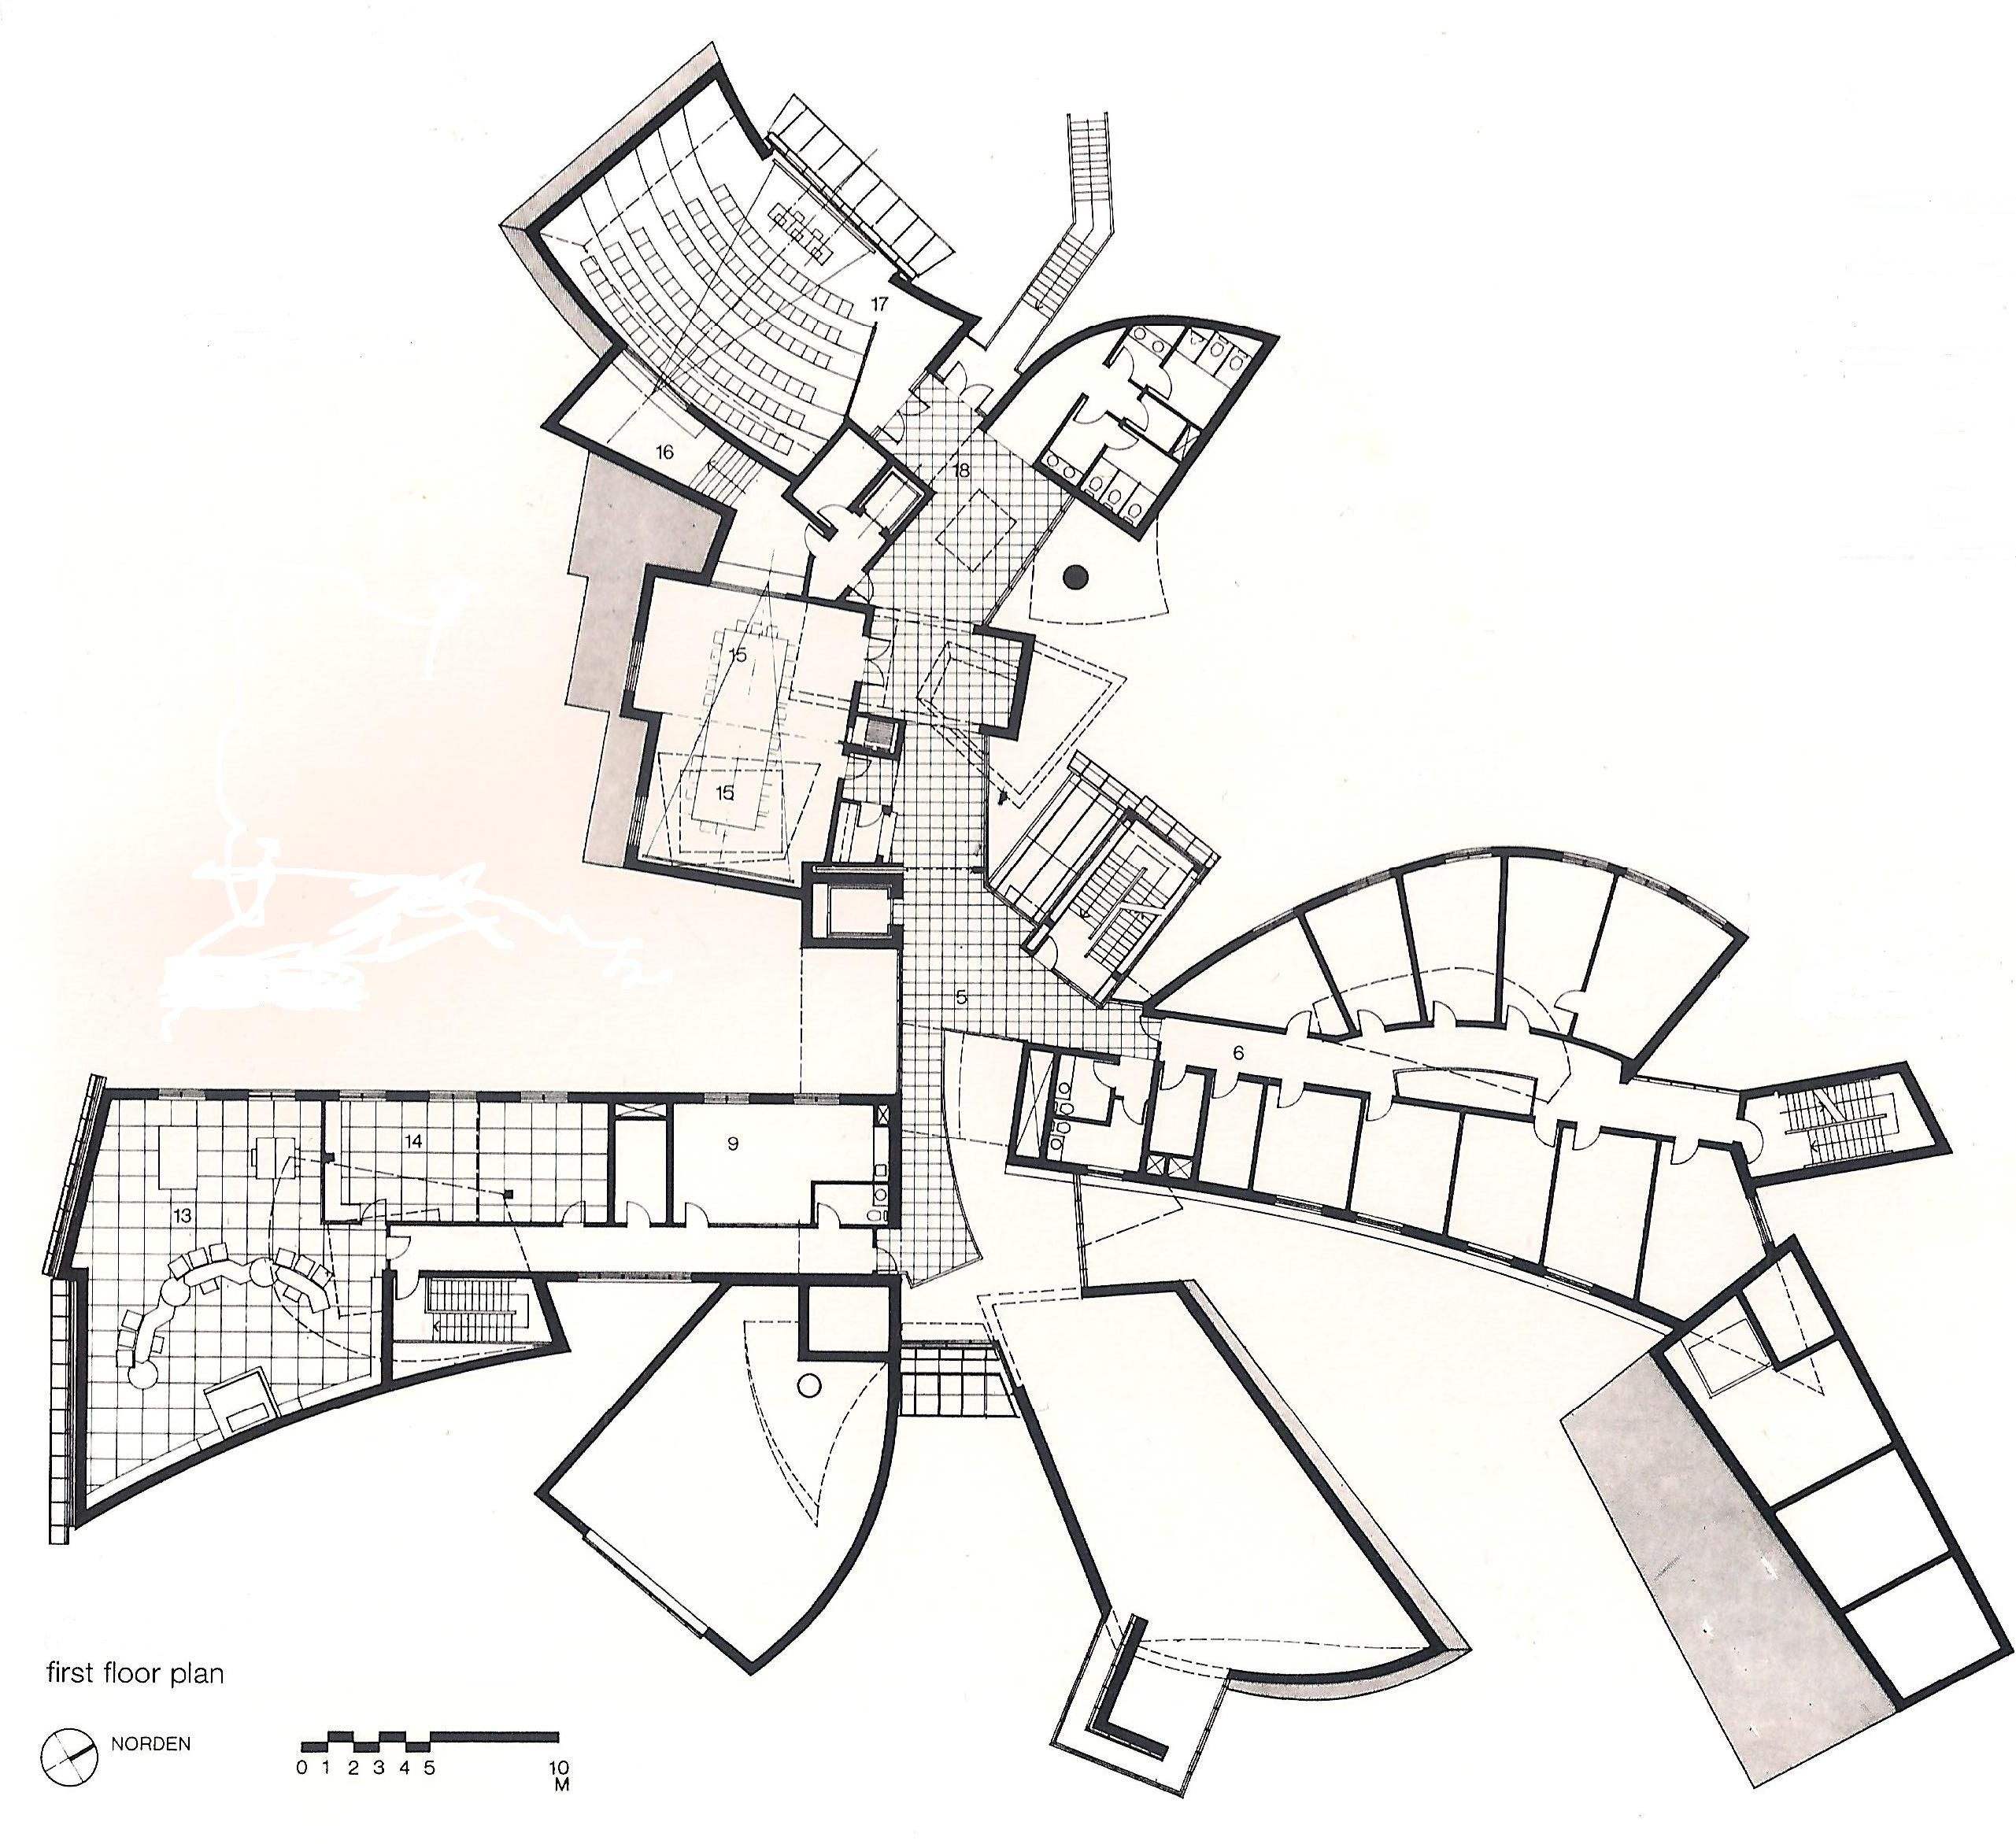 Ad classic norton house frank gehry archdaily - Gehry S Emr Communication And Technology Center First Floor Plan Archi Pinterest Frank Gehry And Architecture